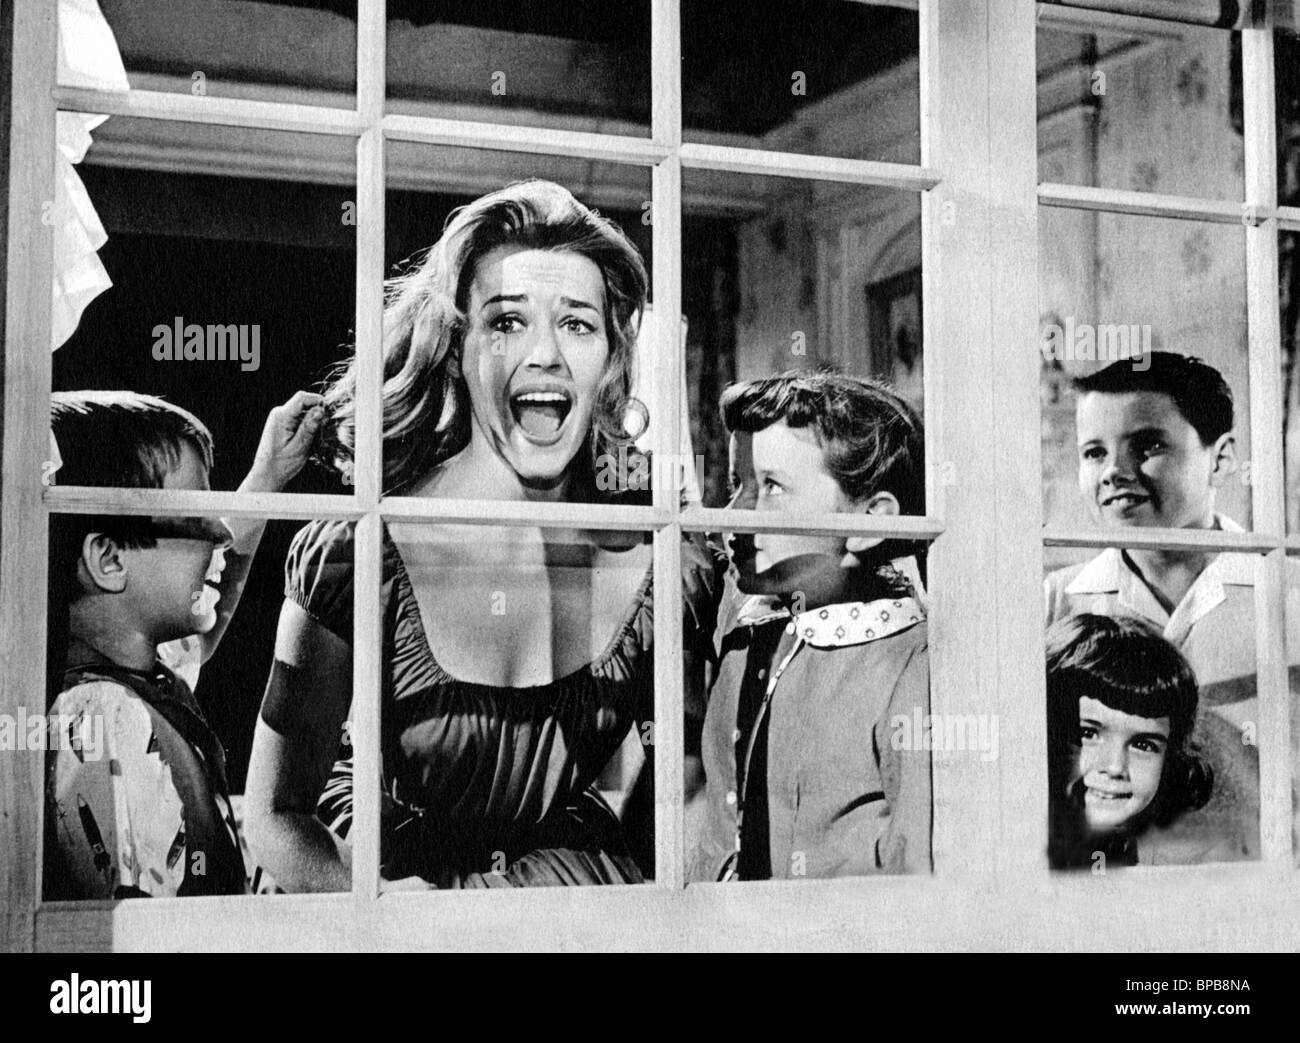 JANE FONDA TALL STORY (1960) - Stock Image